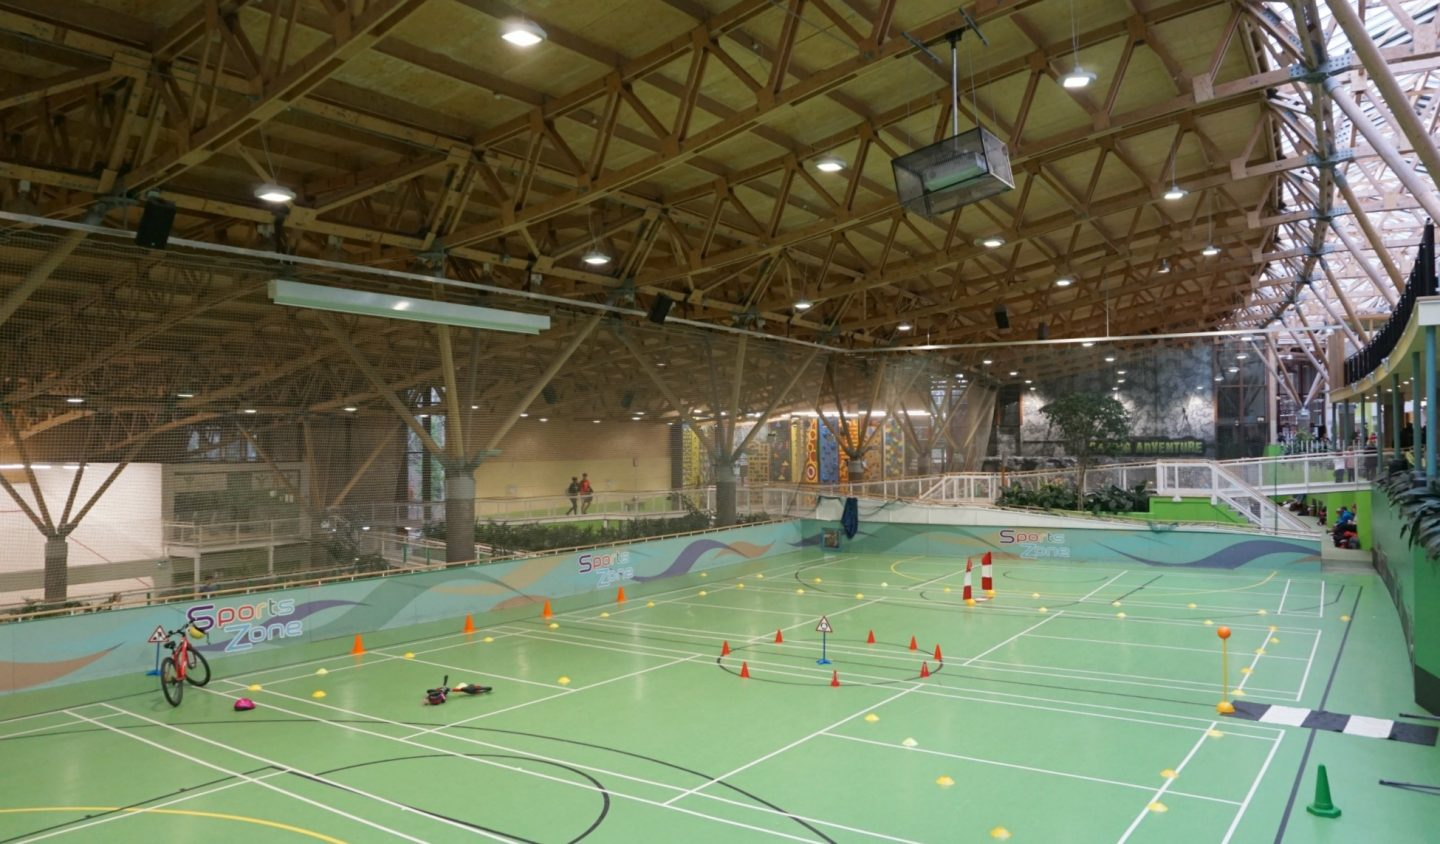 Sports Plaza At Center Parcs Whinfell Forrest www.extraordinarychaos.com